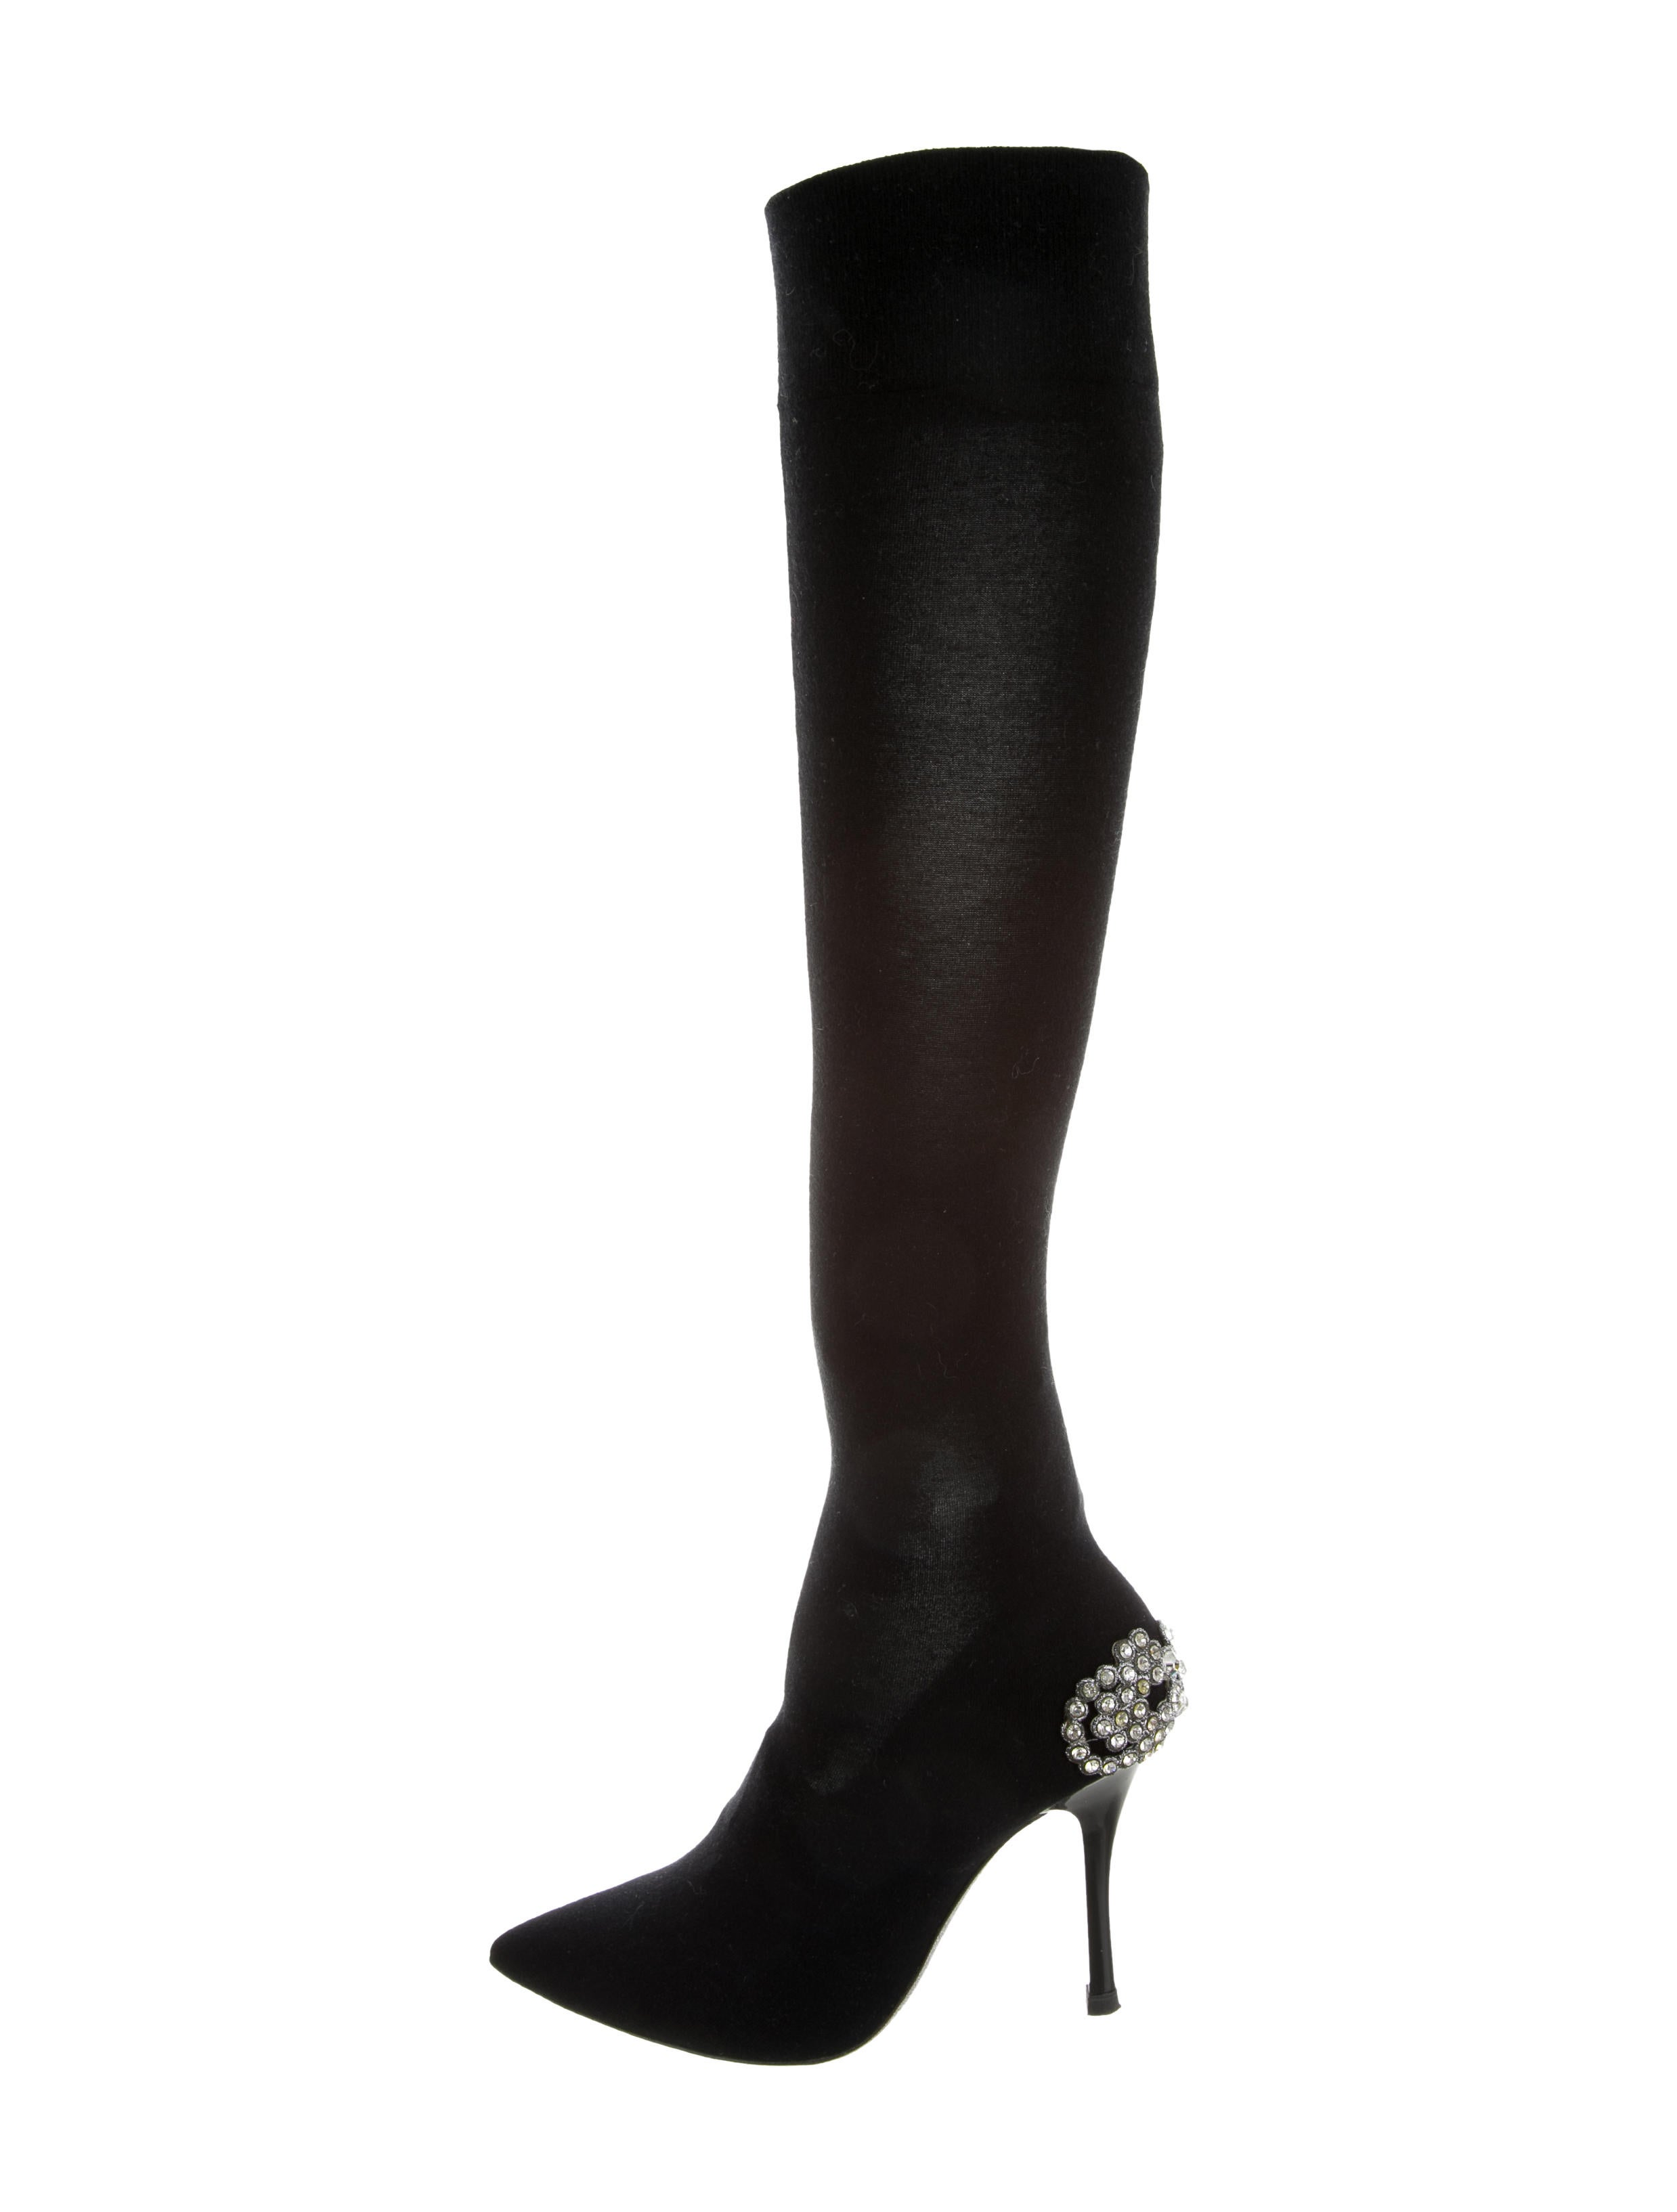 discount pick a best Cheapest sale online René Caovilla Rene Caovilla Embellished Knee-High Sock Boots discount supply low cost online ktrR8Hu